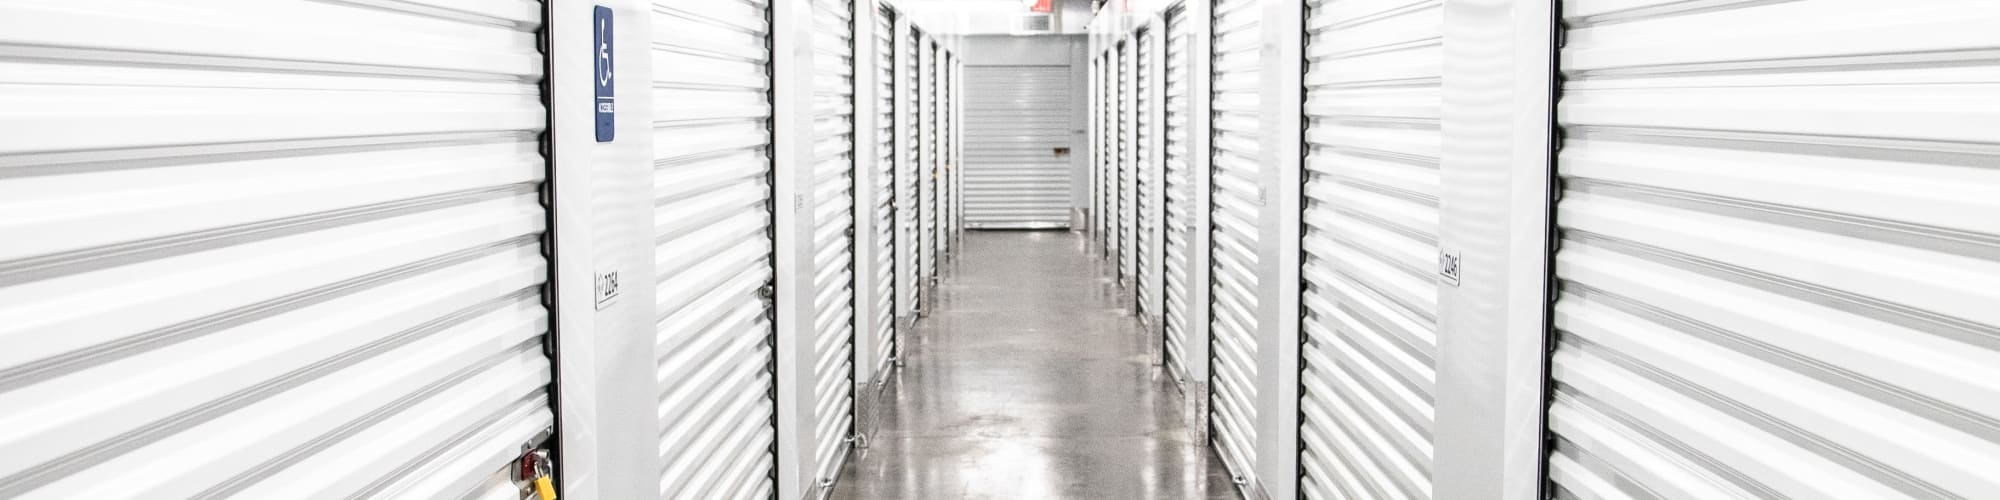 Climate-controlled storage at My Neighborhood Storage Center in Jacksonville, Florida